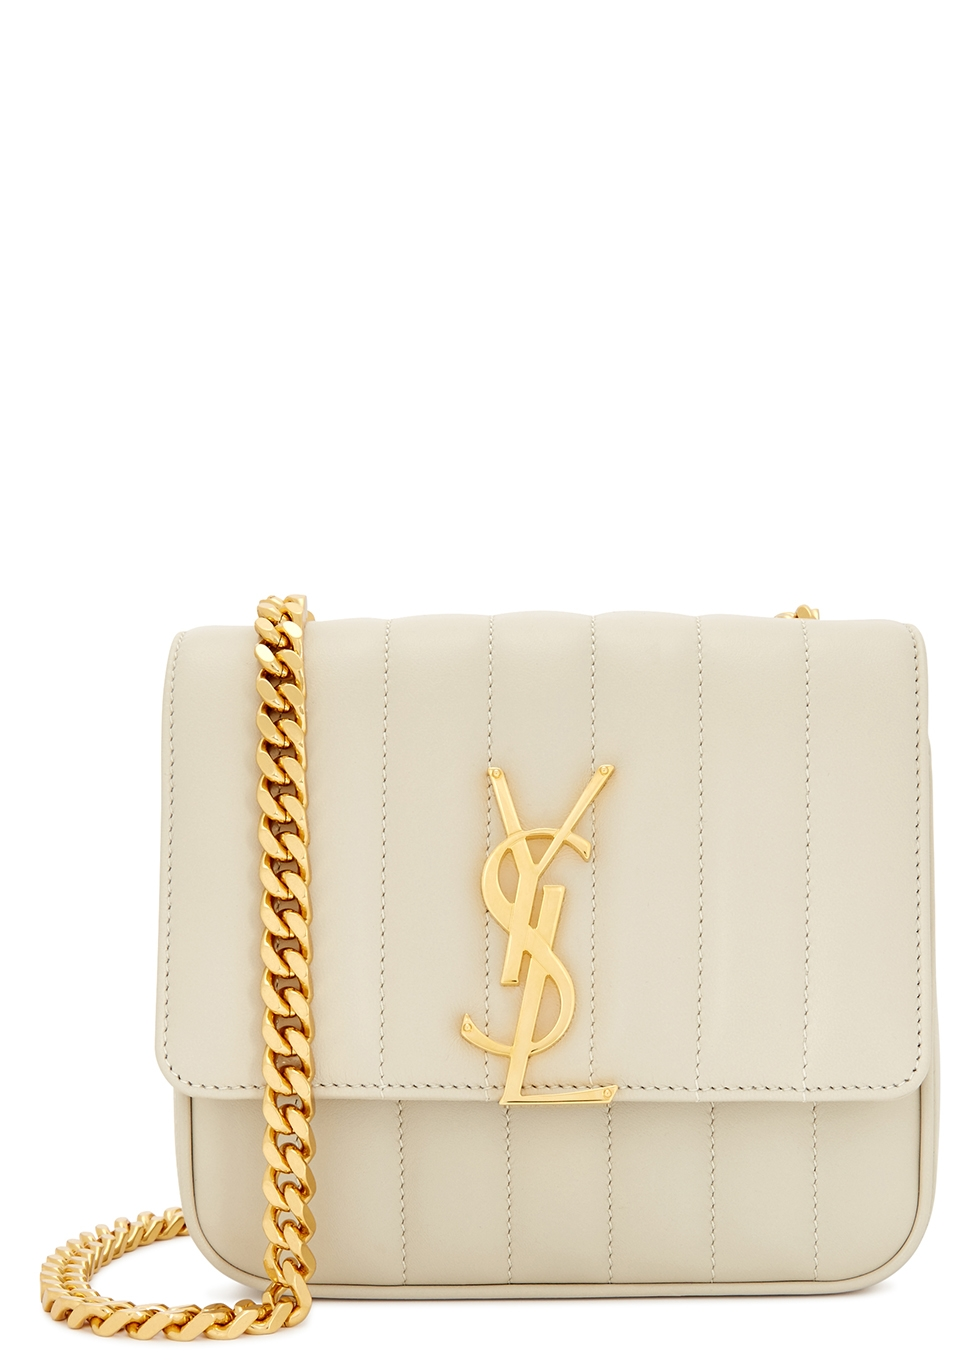 Vicky small leather shoulder bag - Saint Laurent